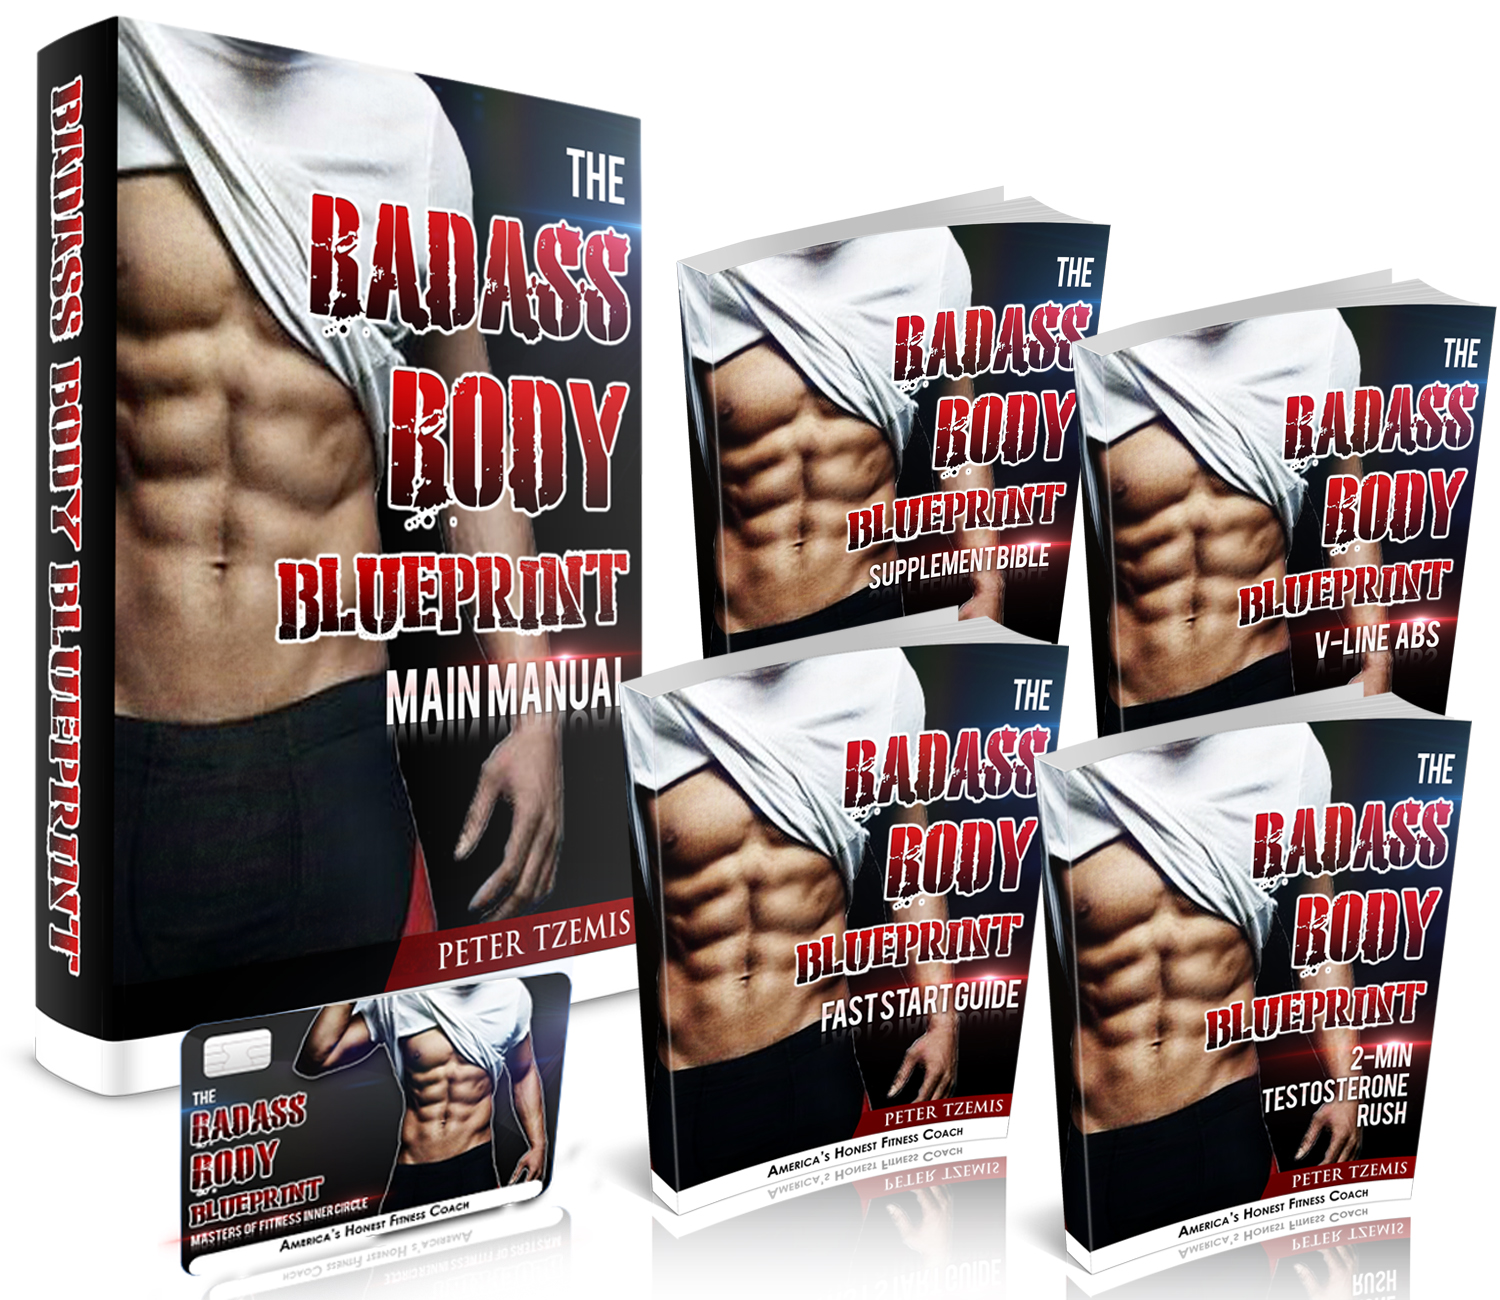 Badass body blueprint peter tzemis the badass body blueprint malvernweather Images